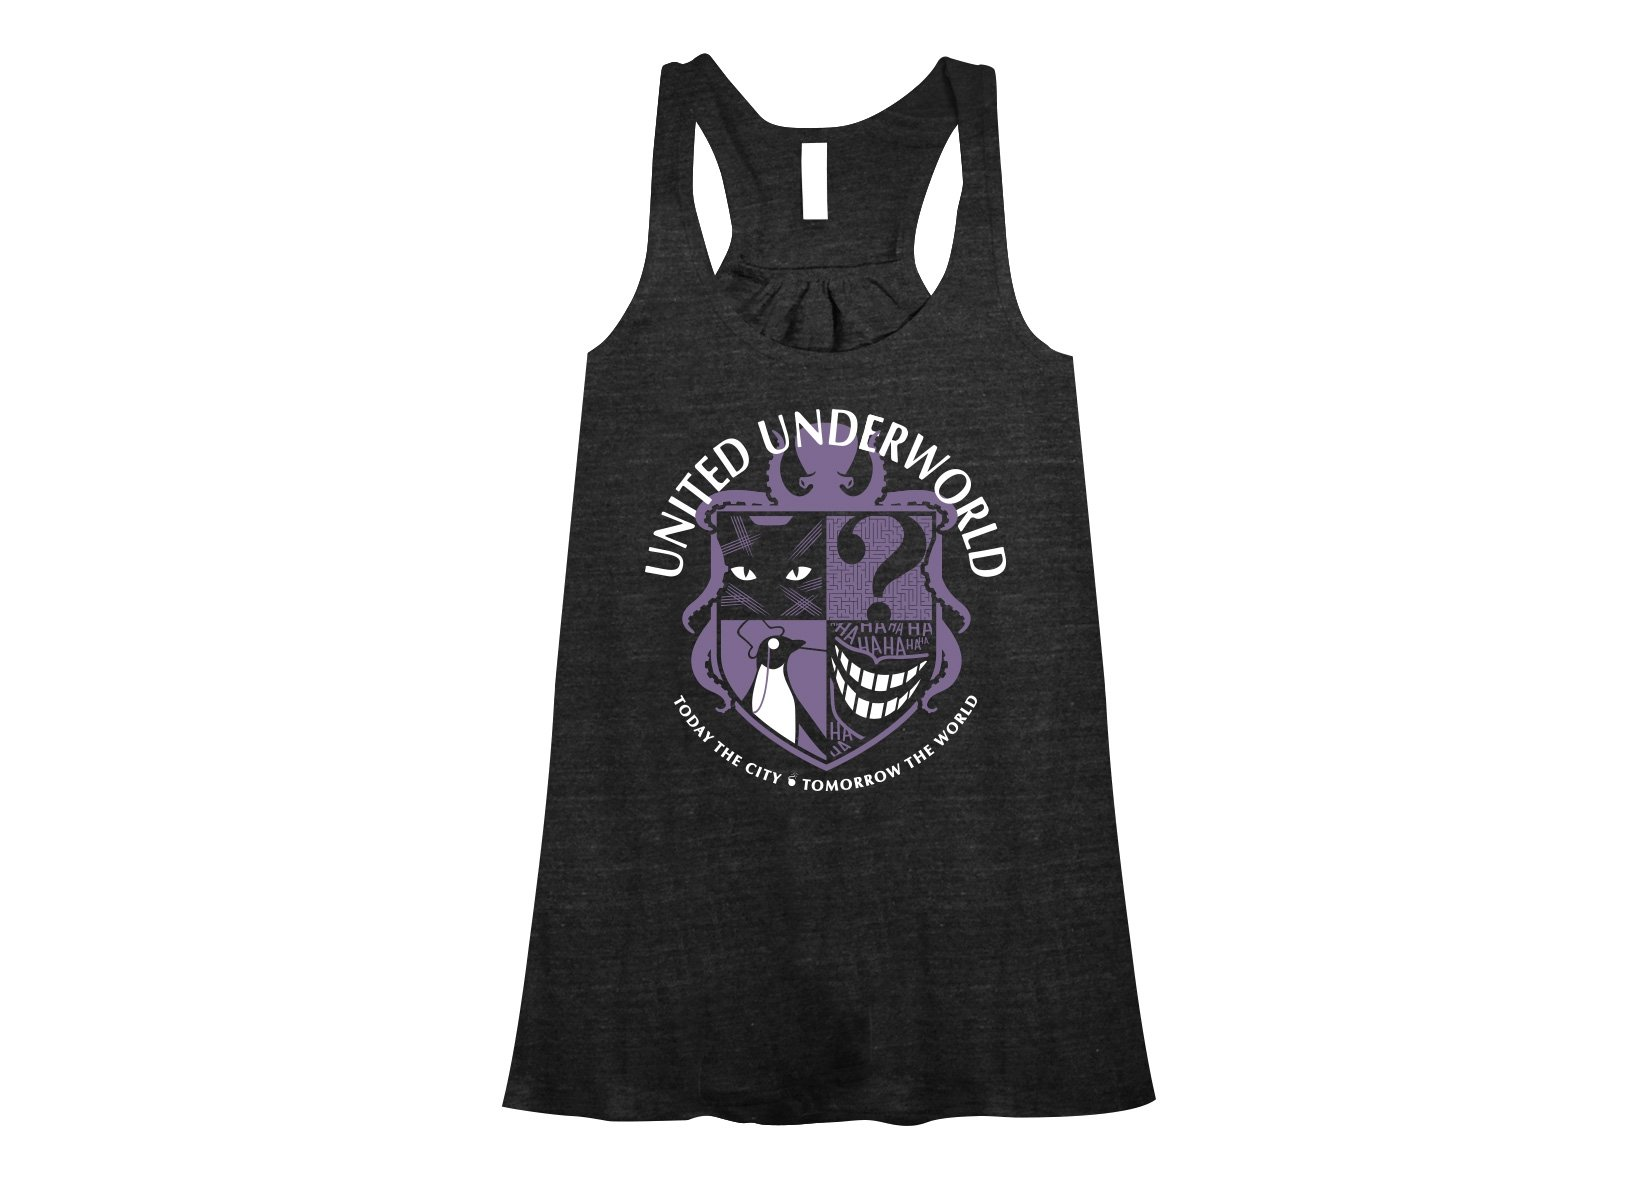 United Underworld on Womens Tanks T-Shirt